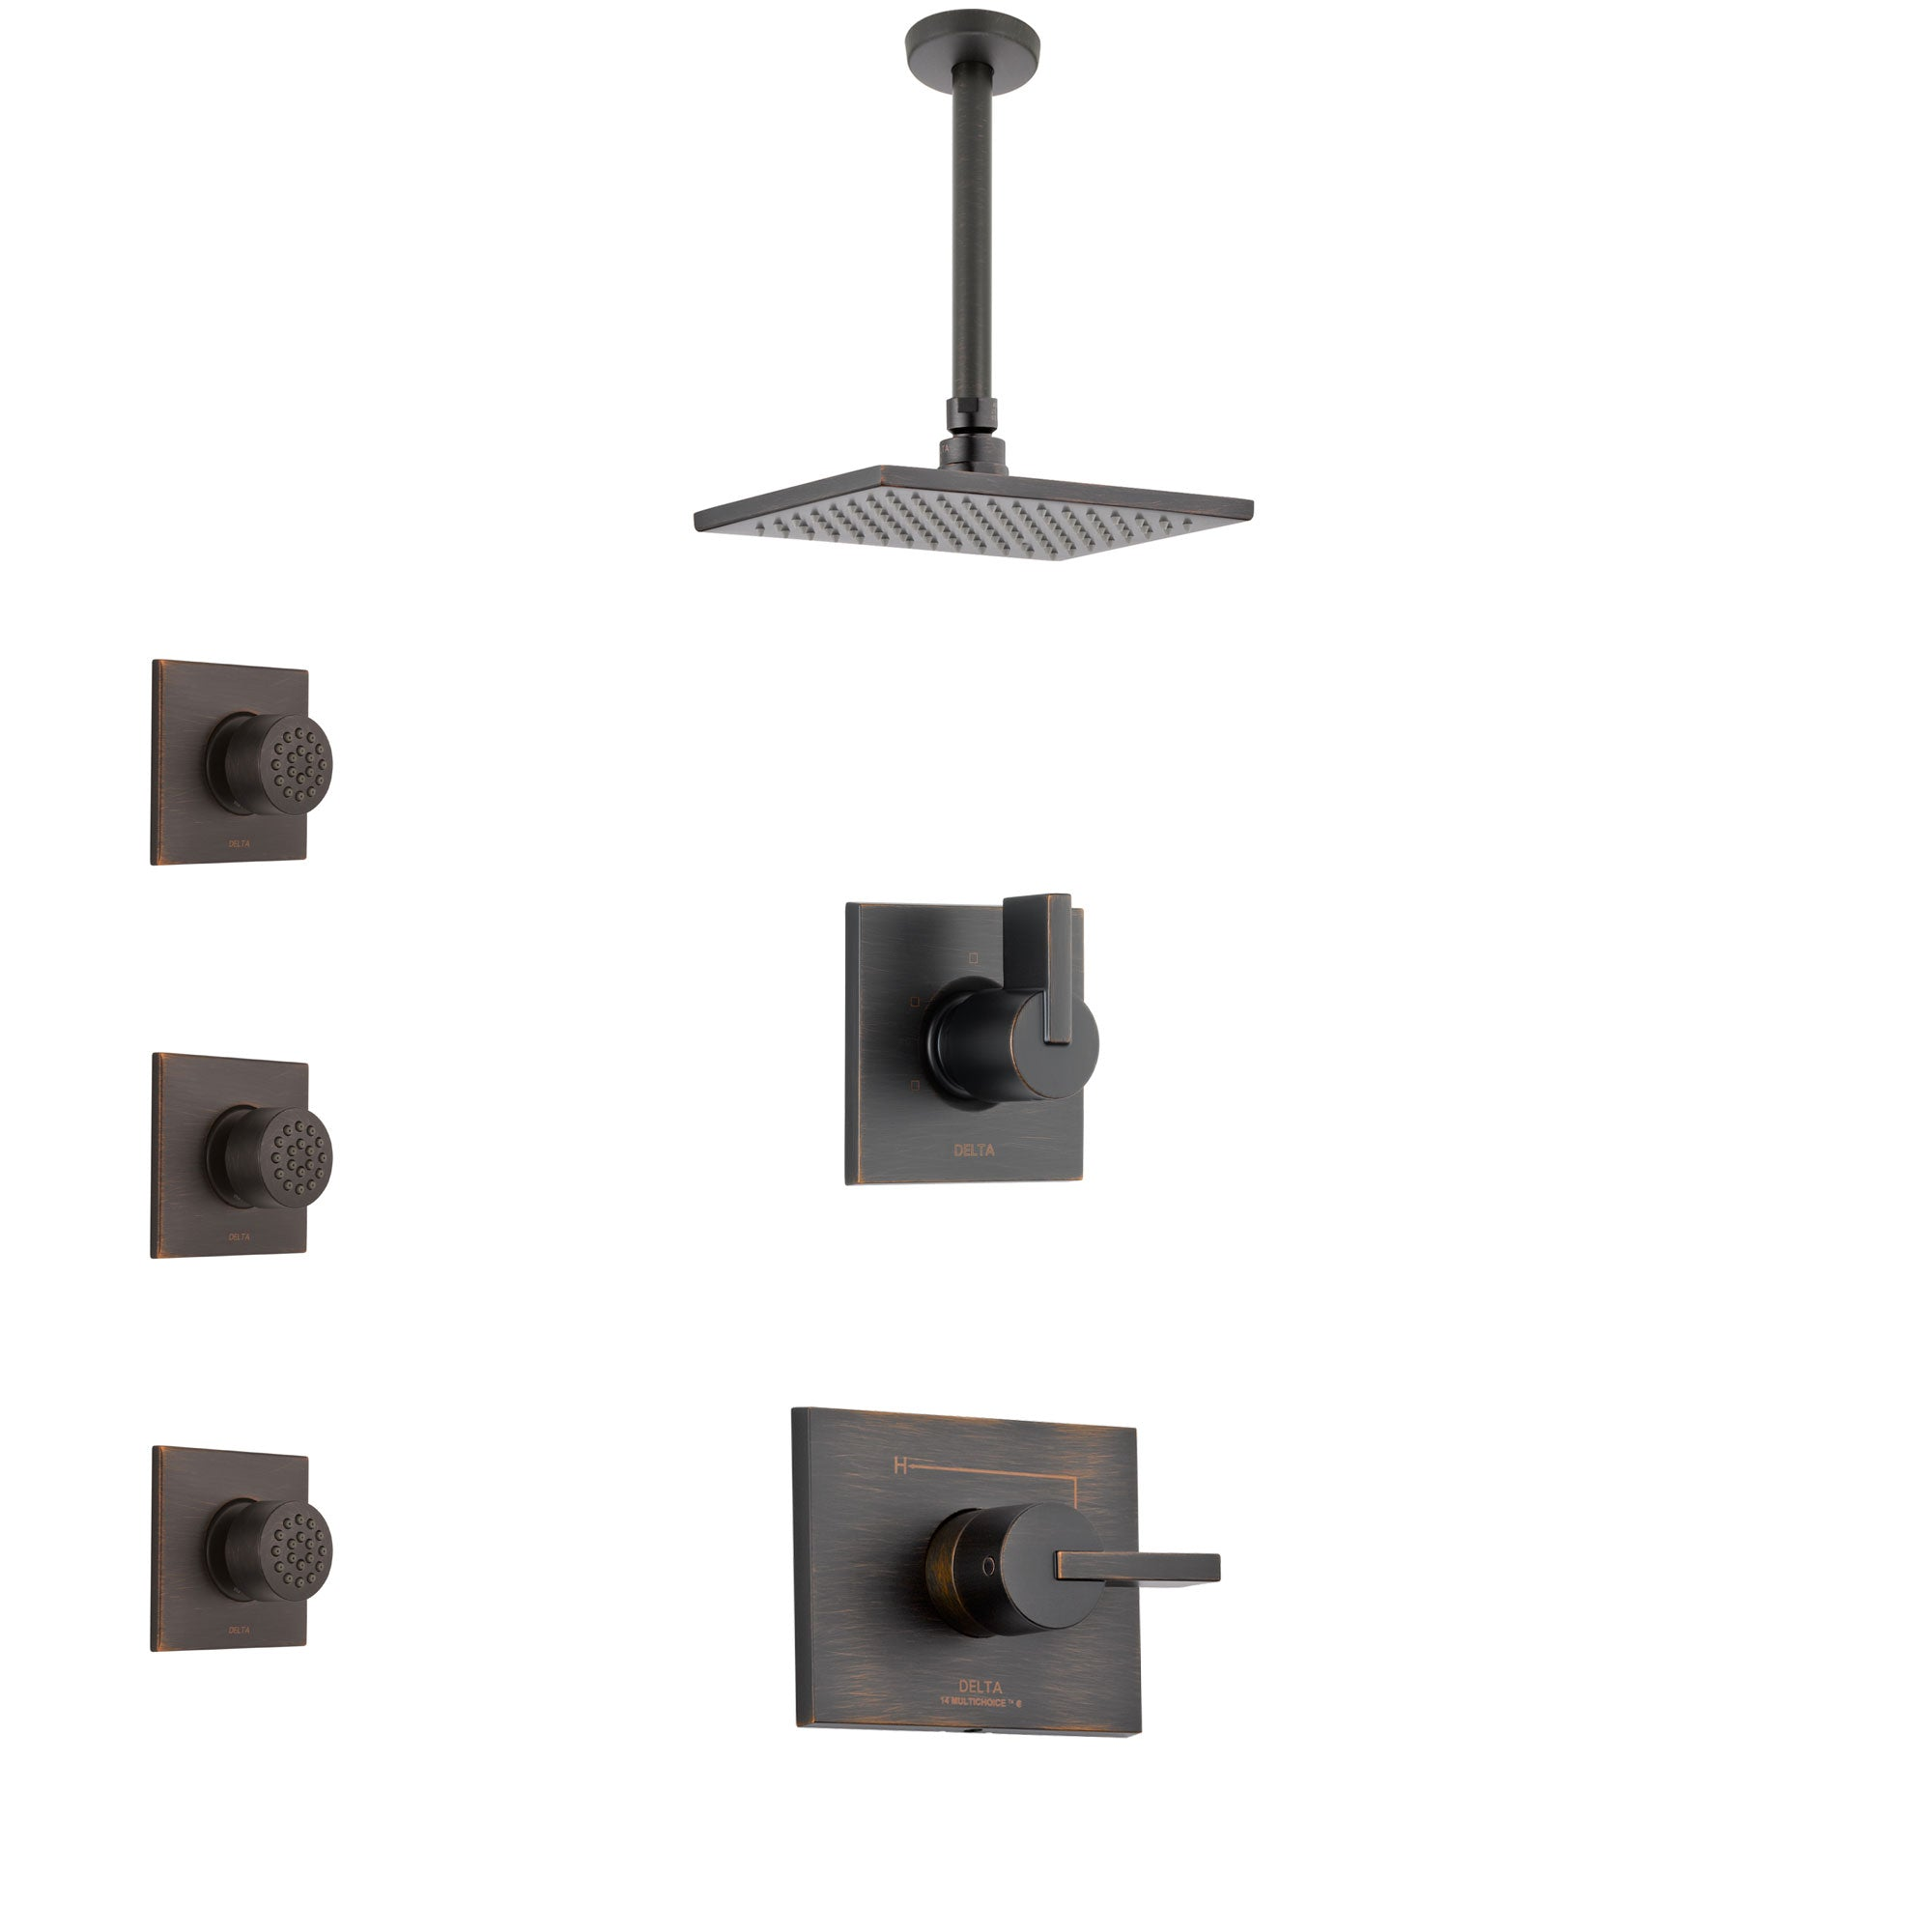 Delta Vero Venetian Bronze Finish Shower System with Control Handle, 3-Setting Diverter, Ceiling Mount Showerhead, and 3 Body Sprays SS1453RB4